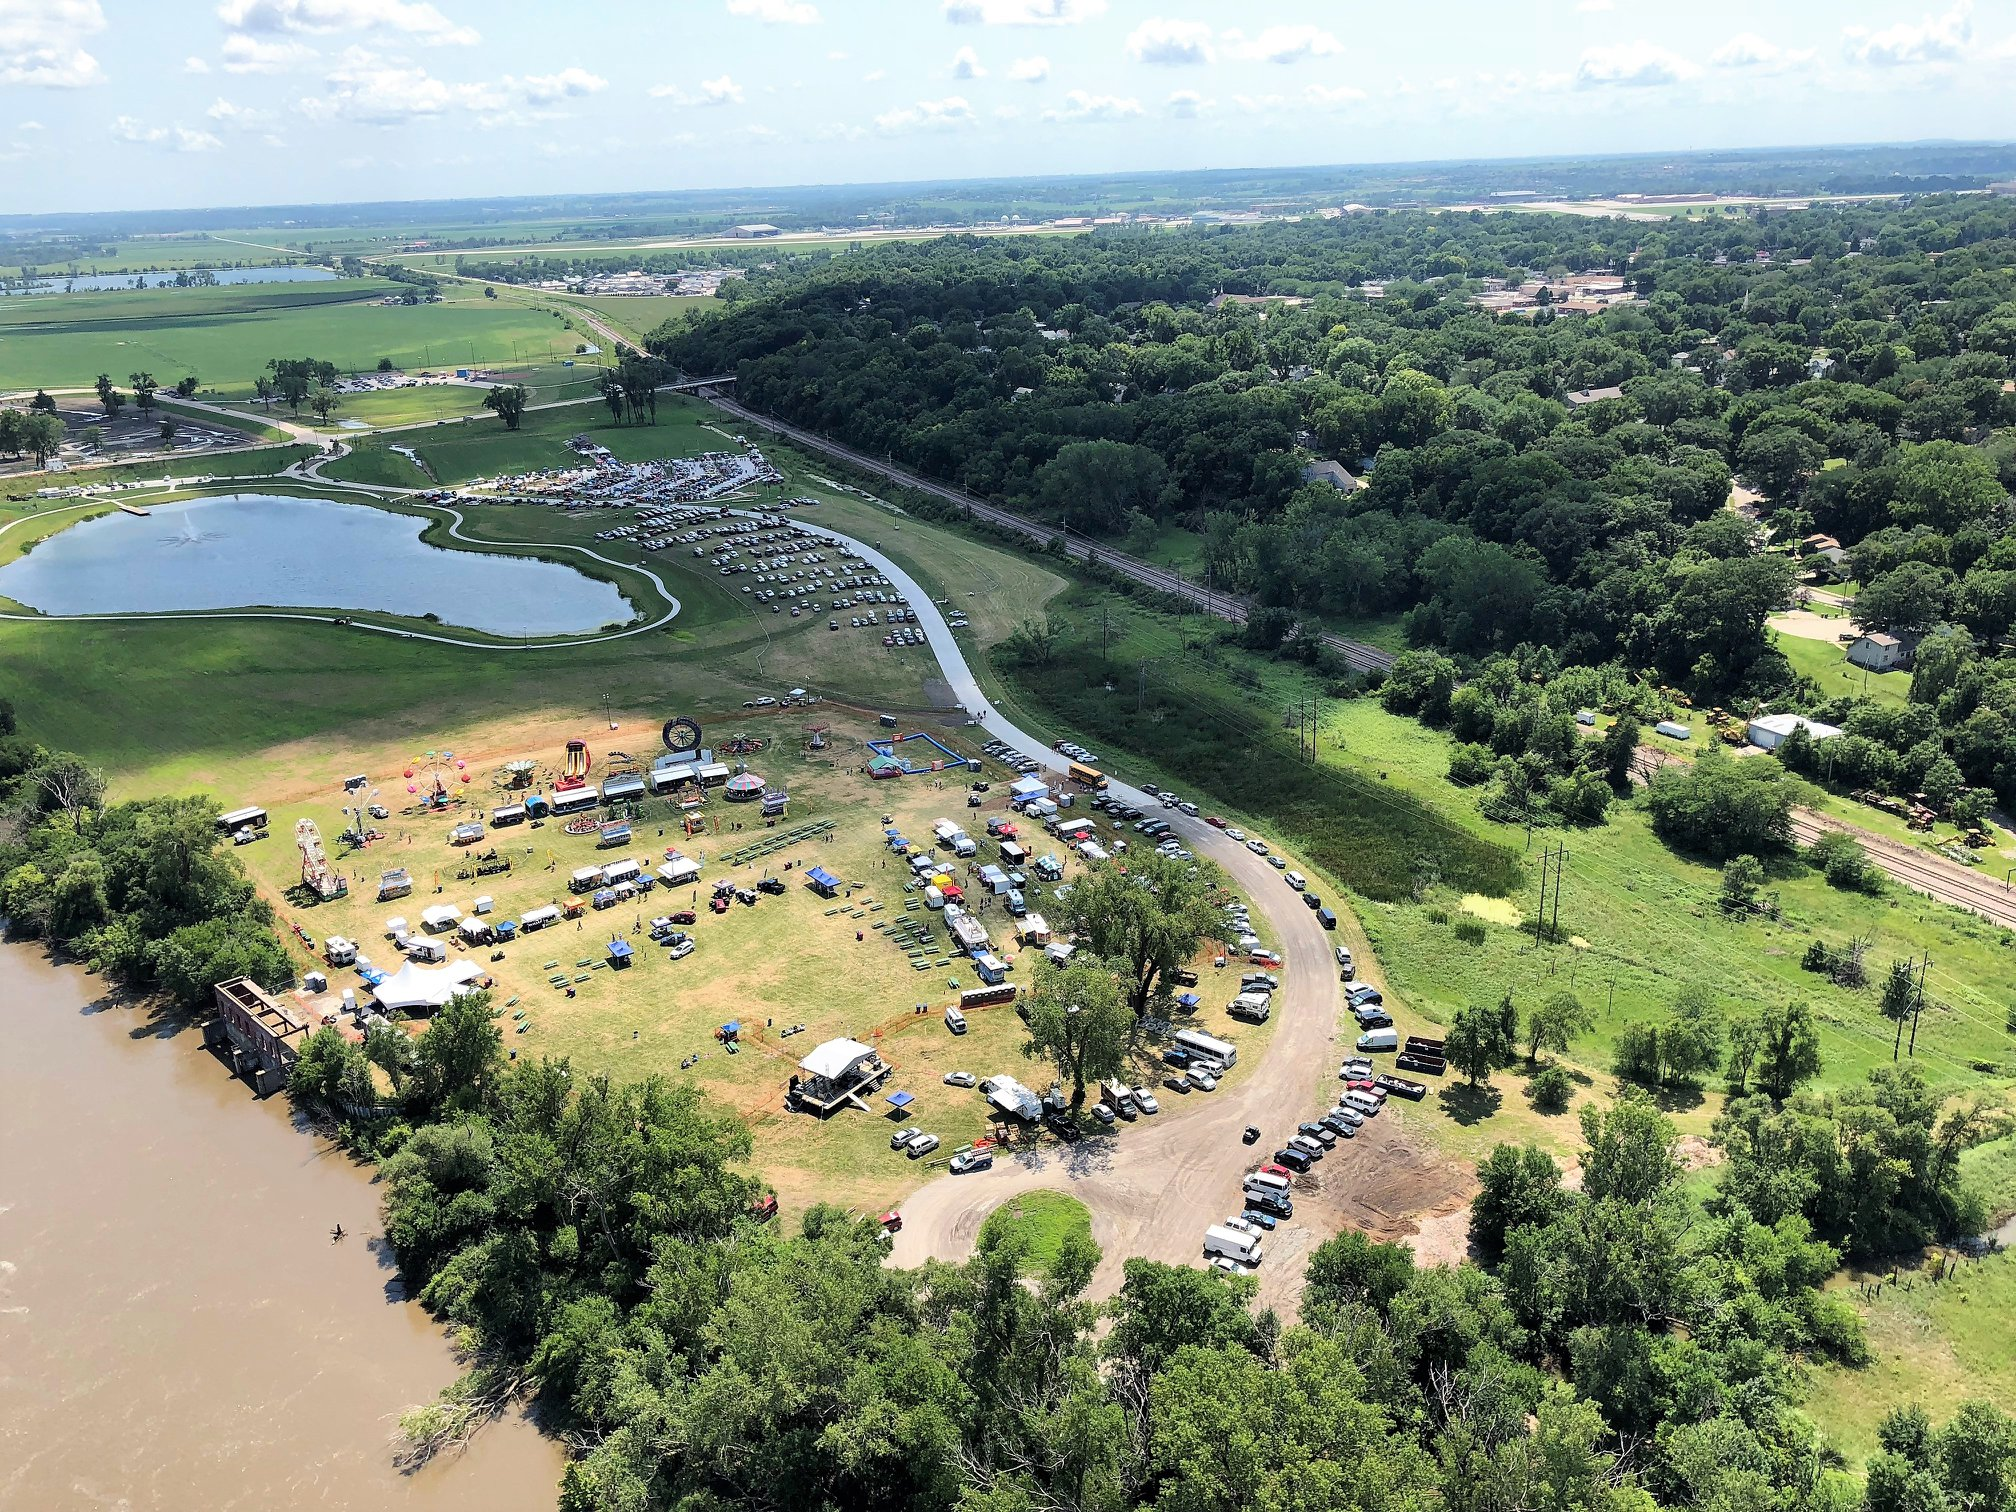 River Fest Overview